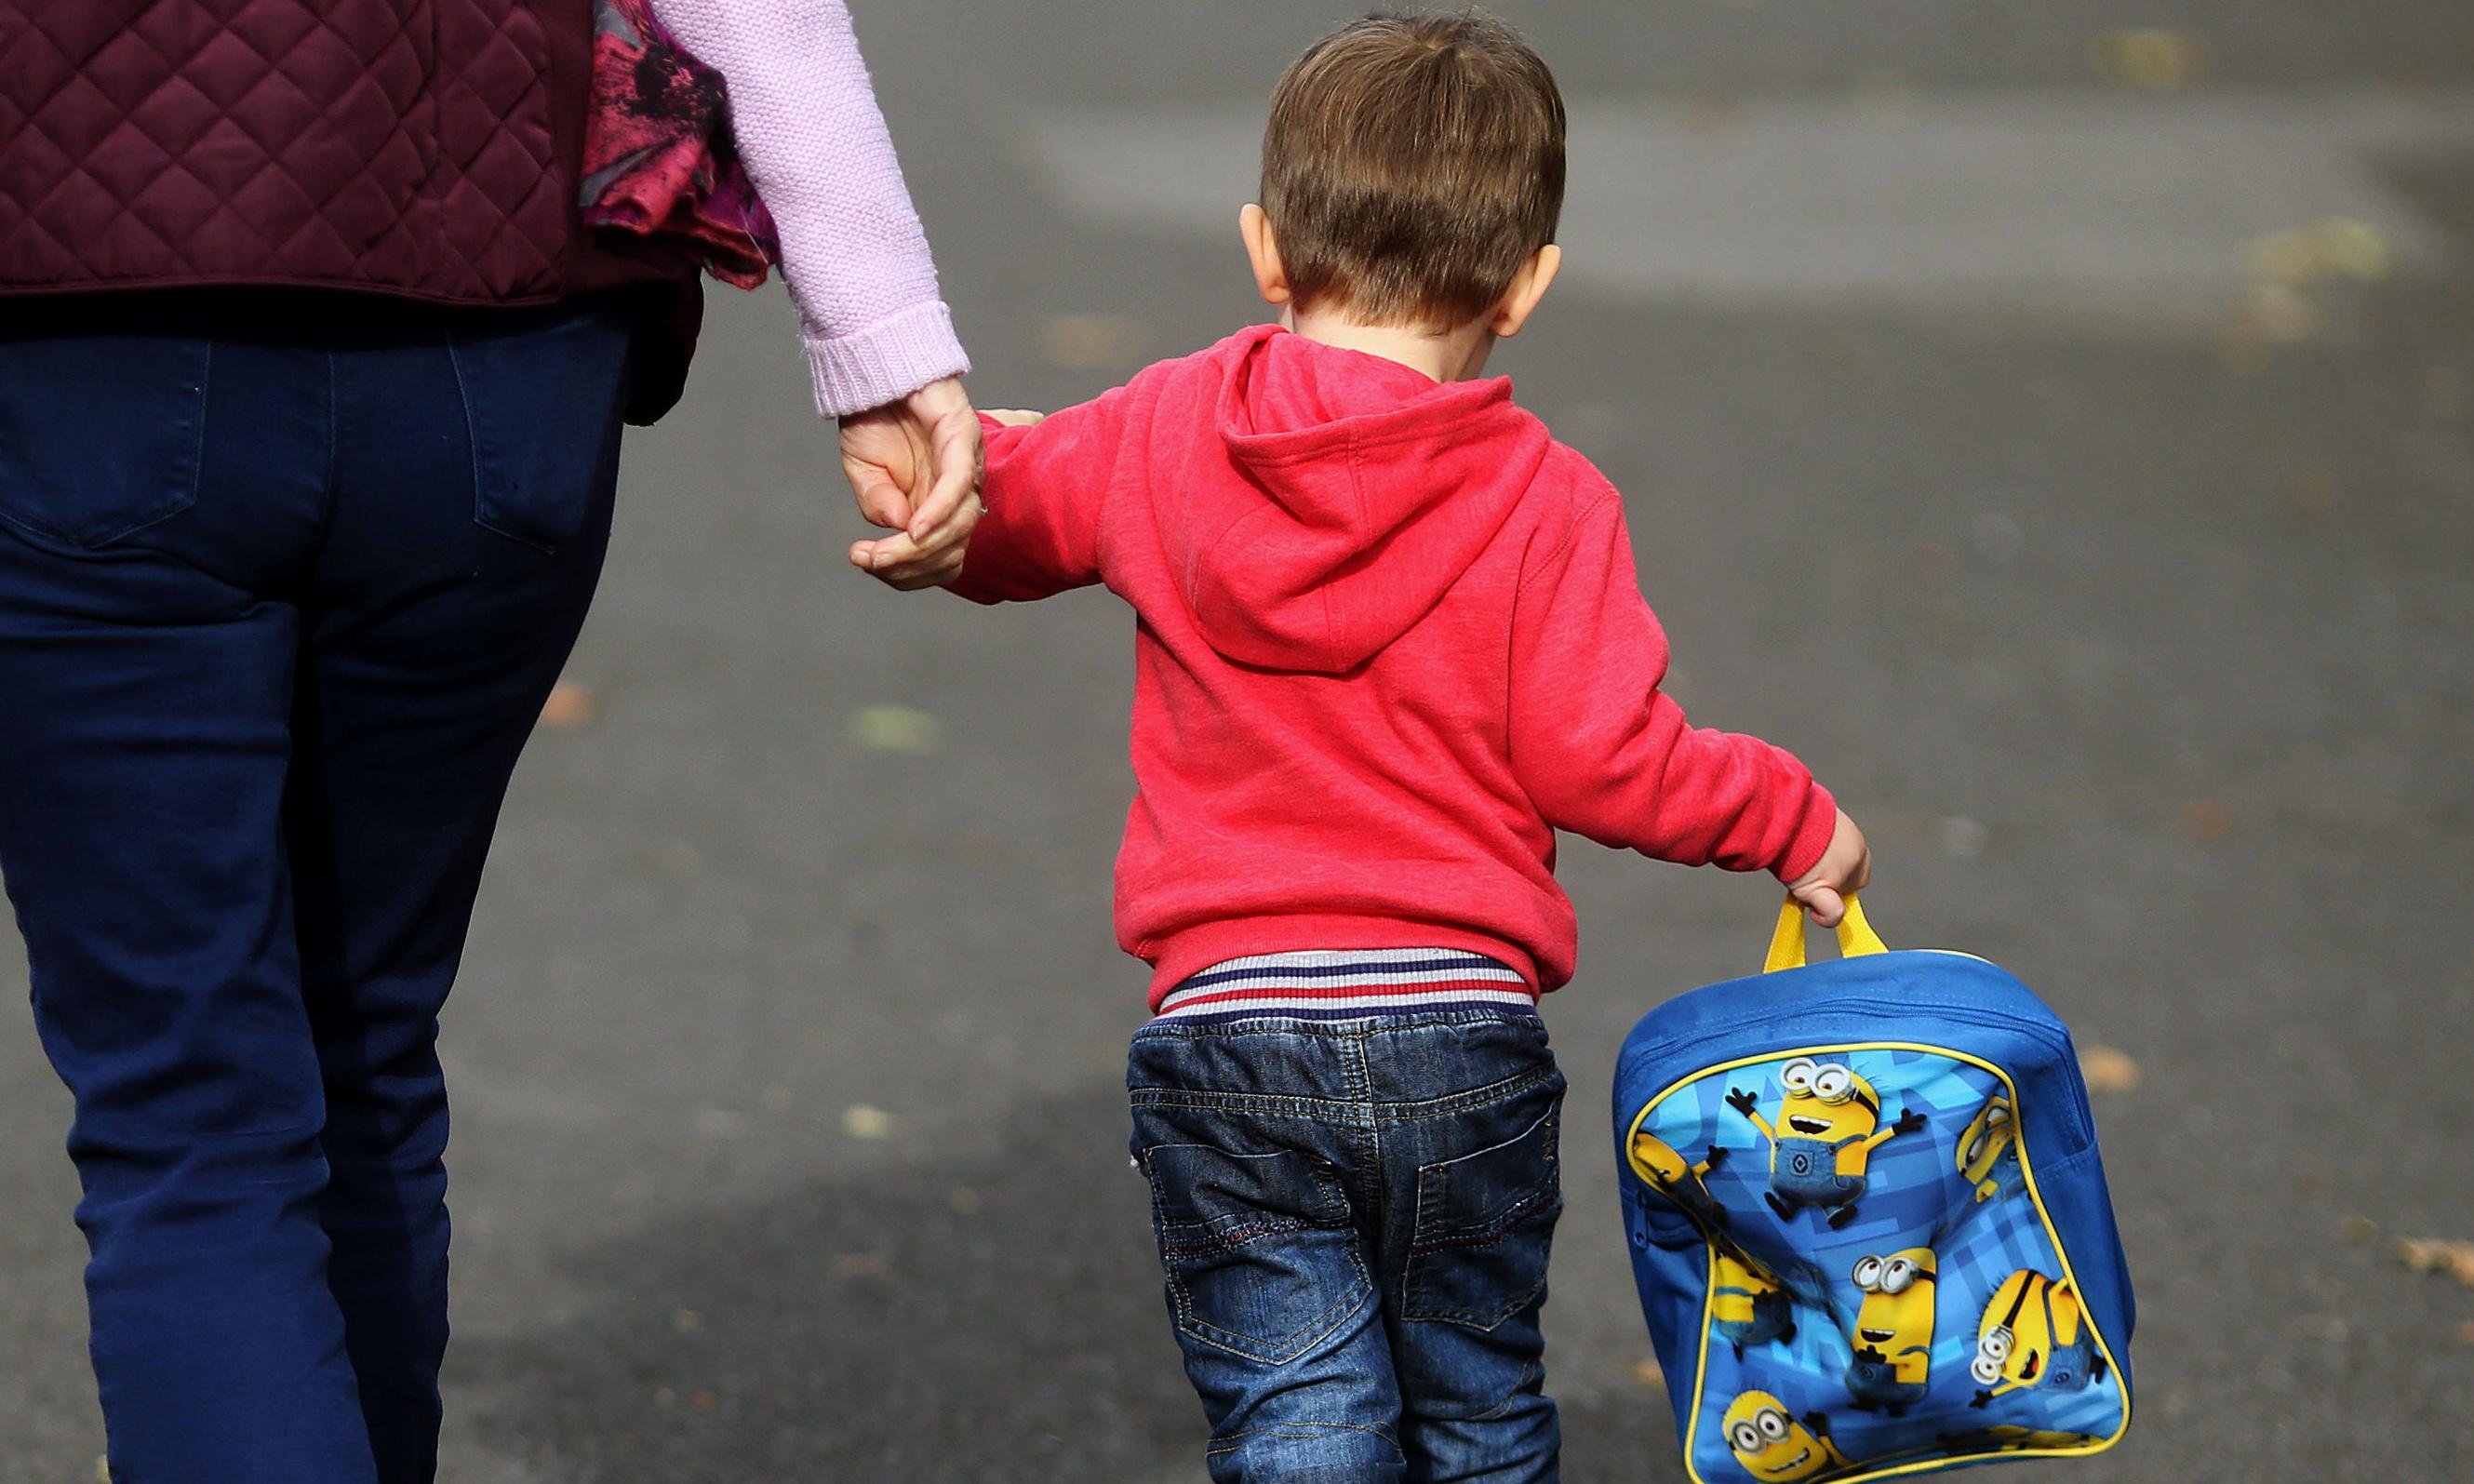 Ardern government fails to reduce child poverty in New Zealand